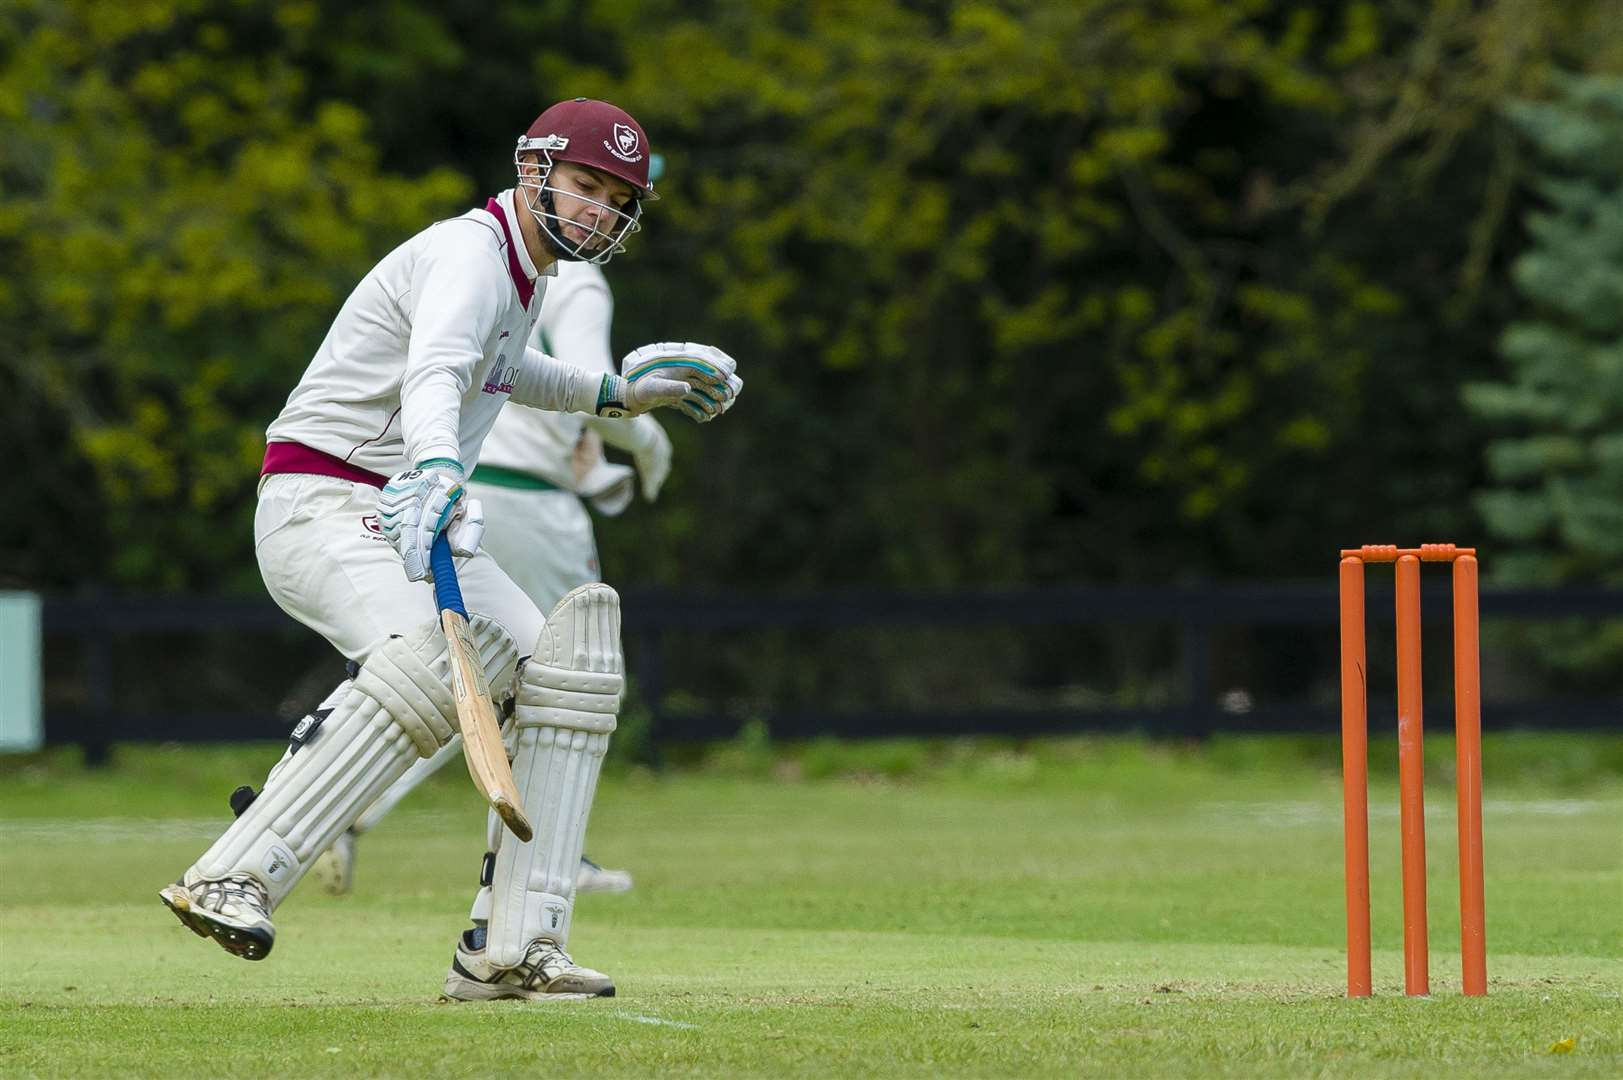 Glen Meredith of Old Buckenham in bat during the Alliance Premier League match between Old Buckenham and Horsford II...Picture: Mark Bullimore Photography. (9656714)